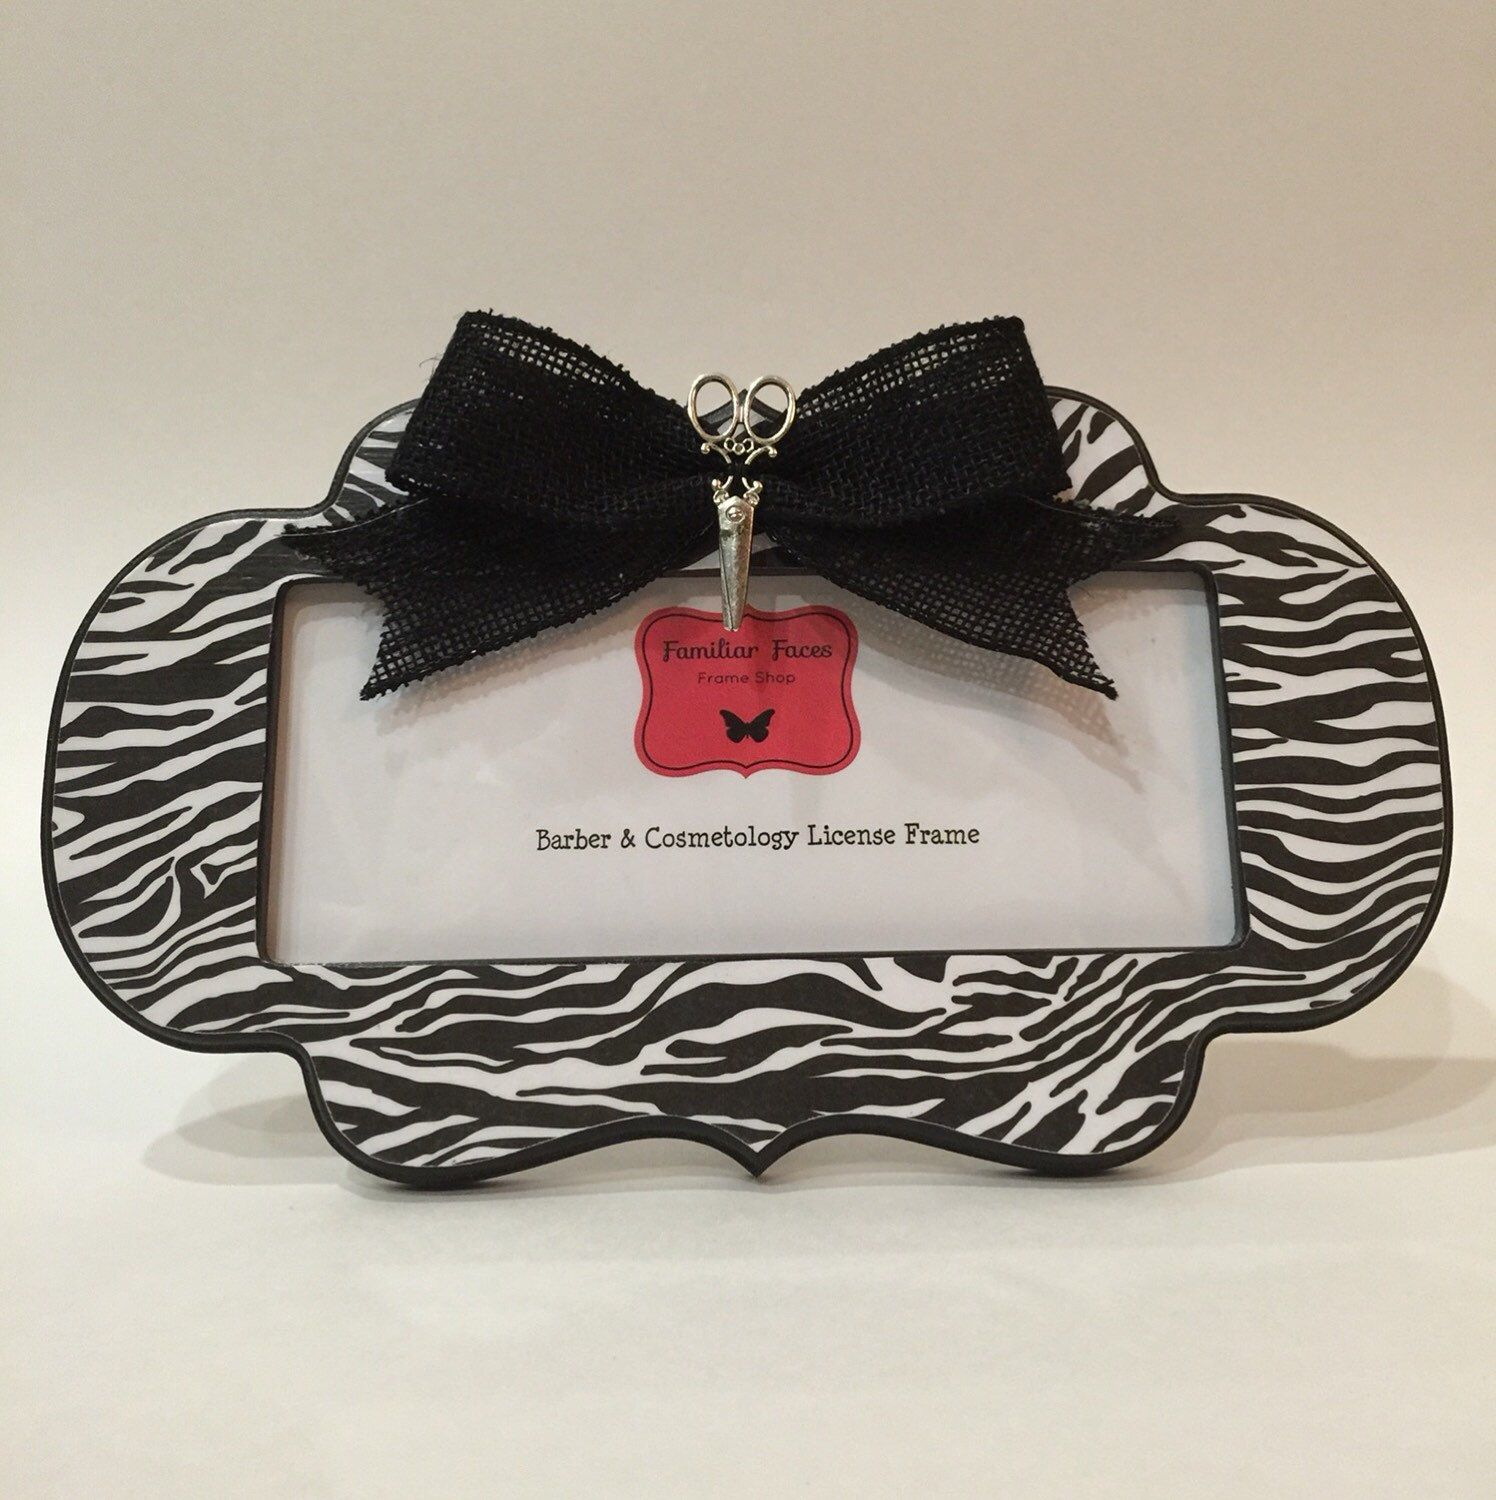 barber cosmetology license frame black white zebra stripes with black bow and silver scissors fits 8 x 3 business certification by familiarfacesframes on